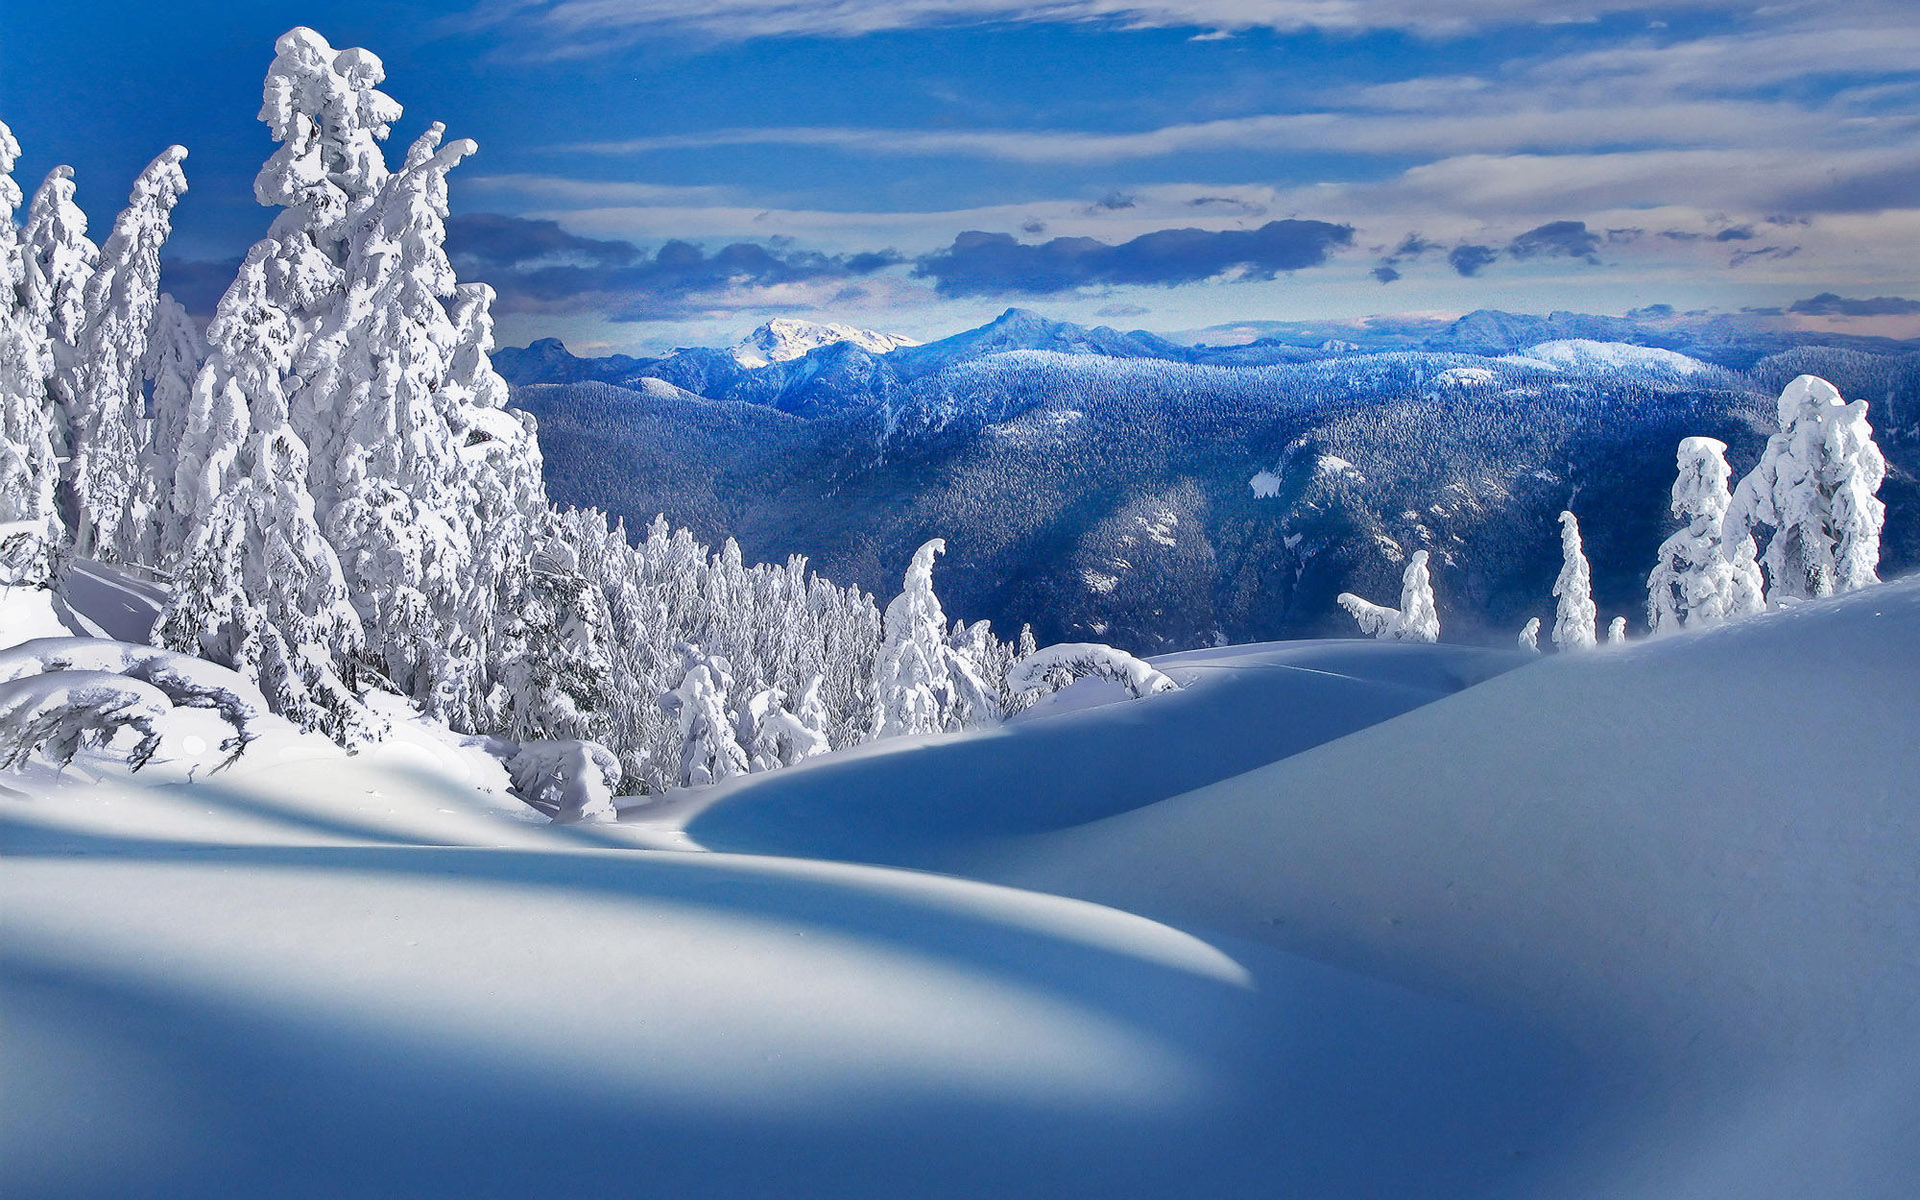 wallpapers winter wallpaper snow pictures mountains 1920x1200 1920x1200